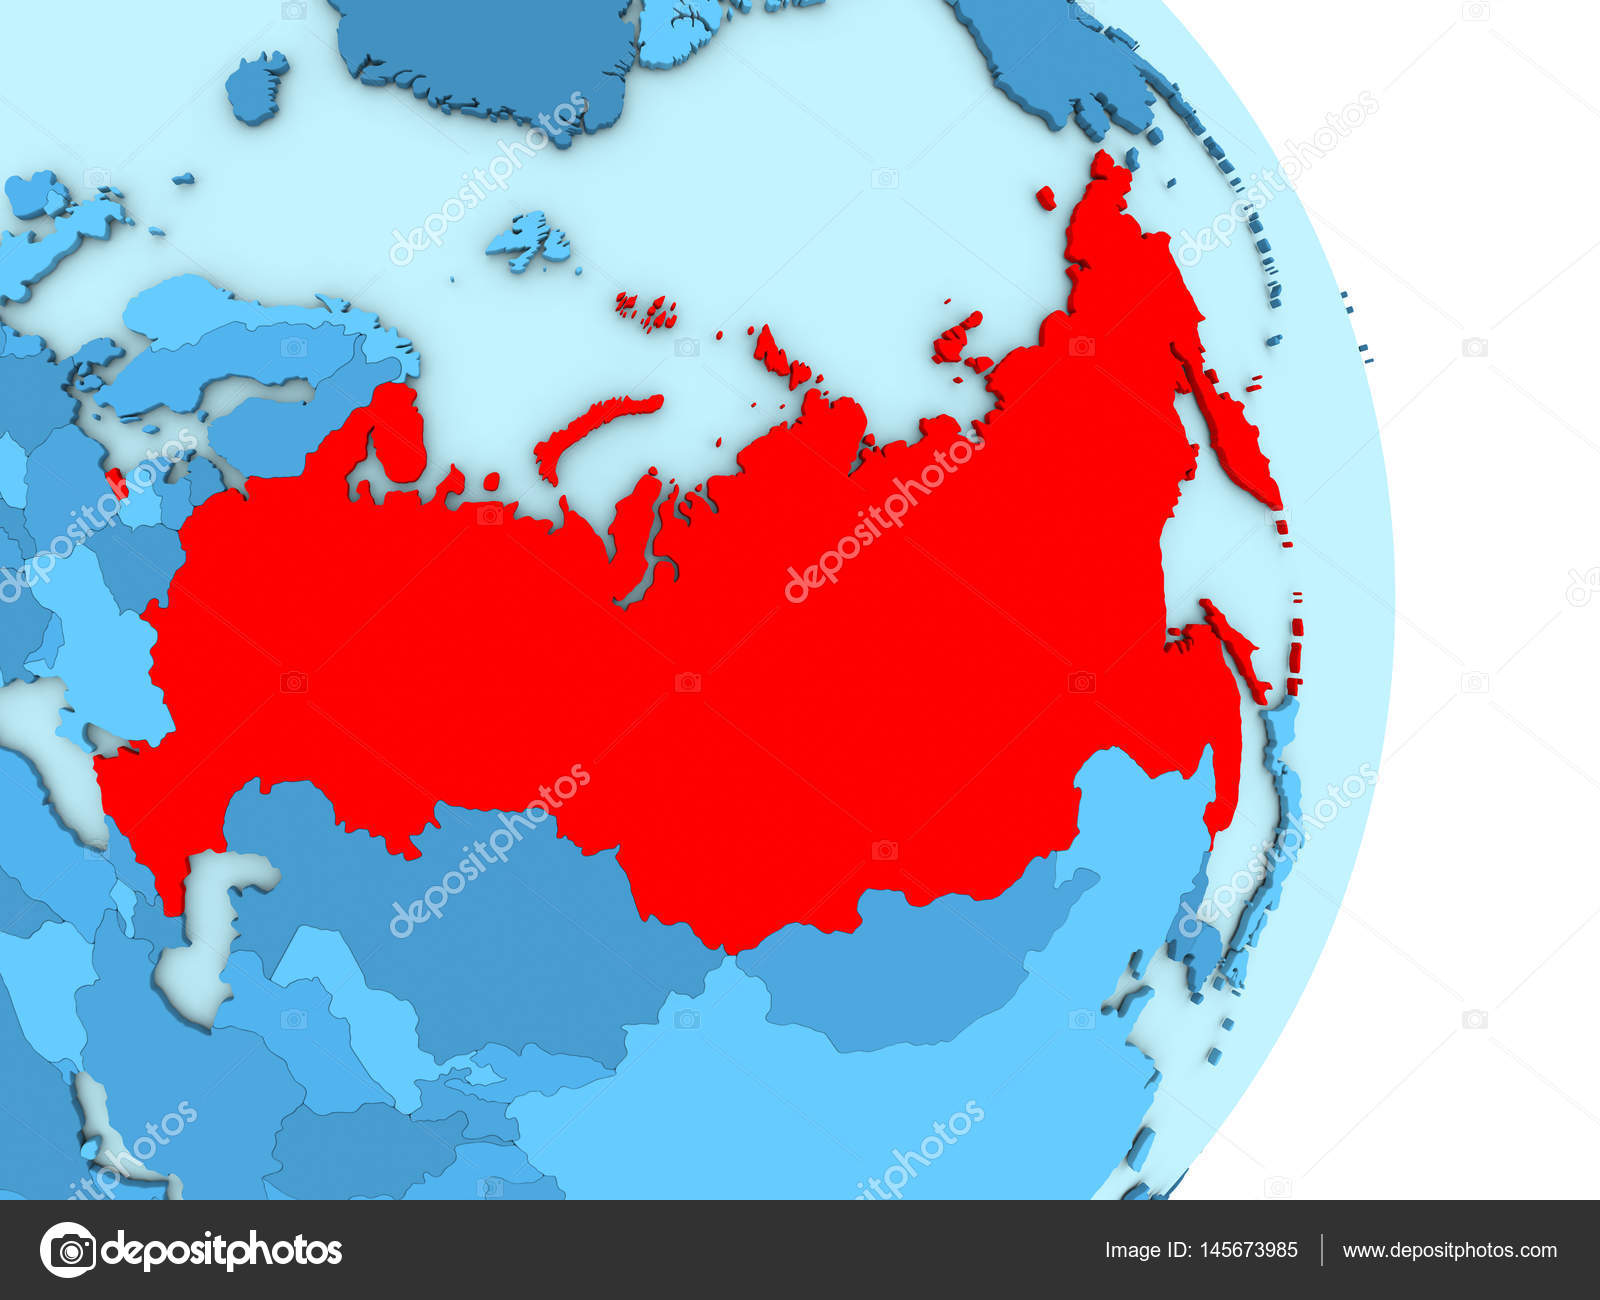 Russia on blue political globe stock photo tomiger 145673985 map of russia on blue globe with visible country borders and countries in different shades of blue 3d illustration photo by tomiger gumiabroncs Images